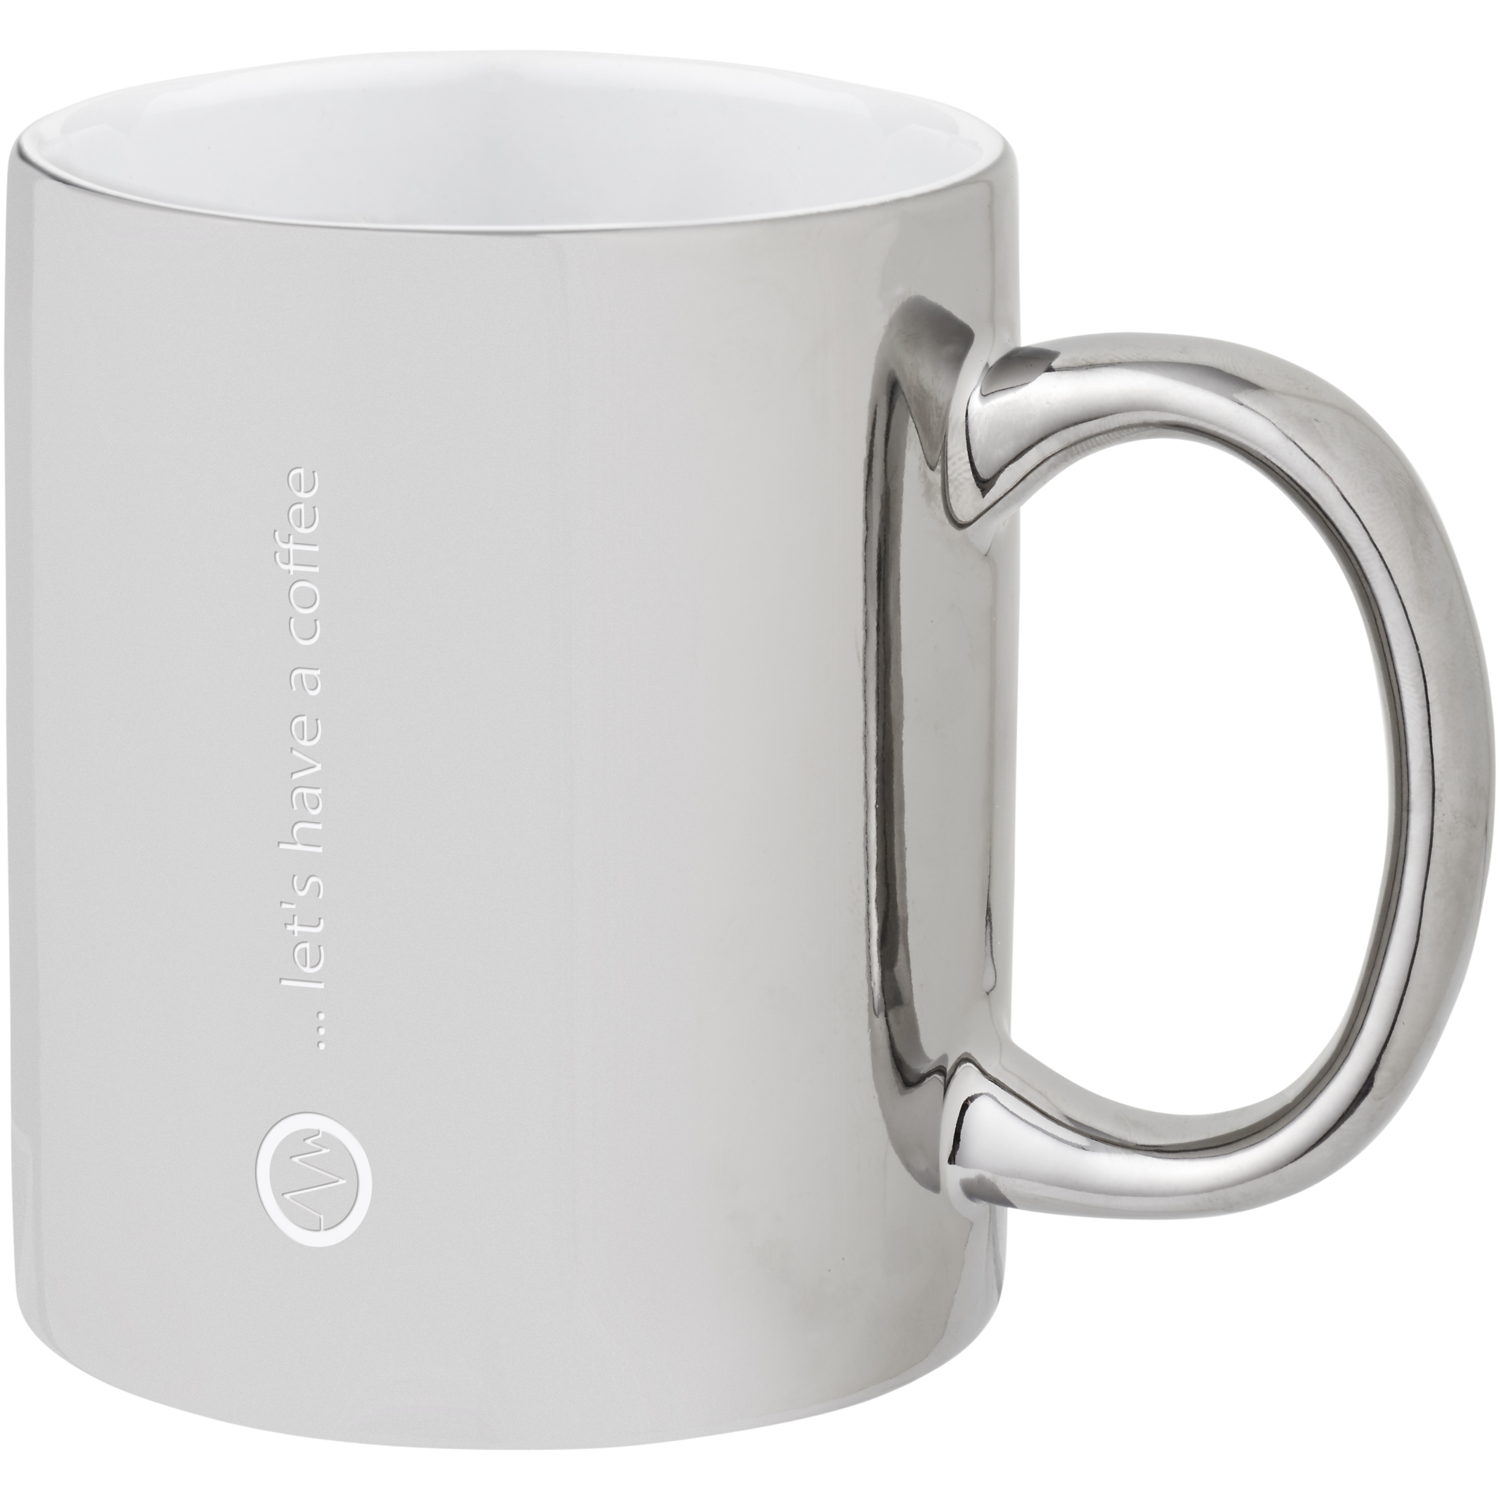 Gleam 350 Ml Ceramic Mug